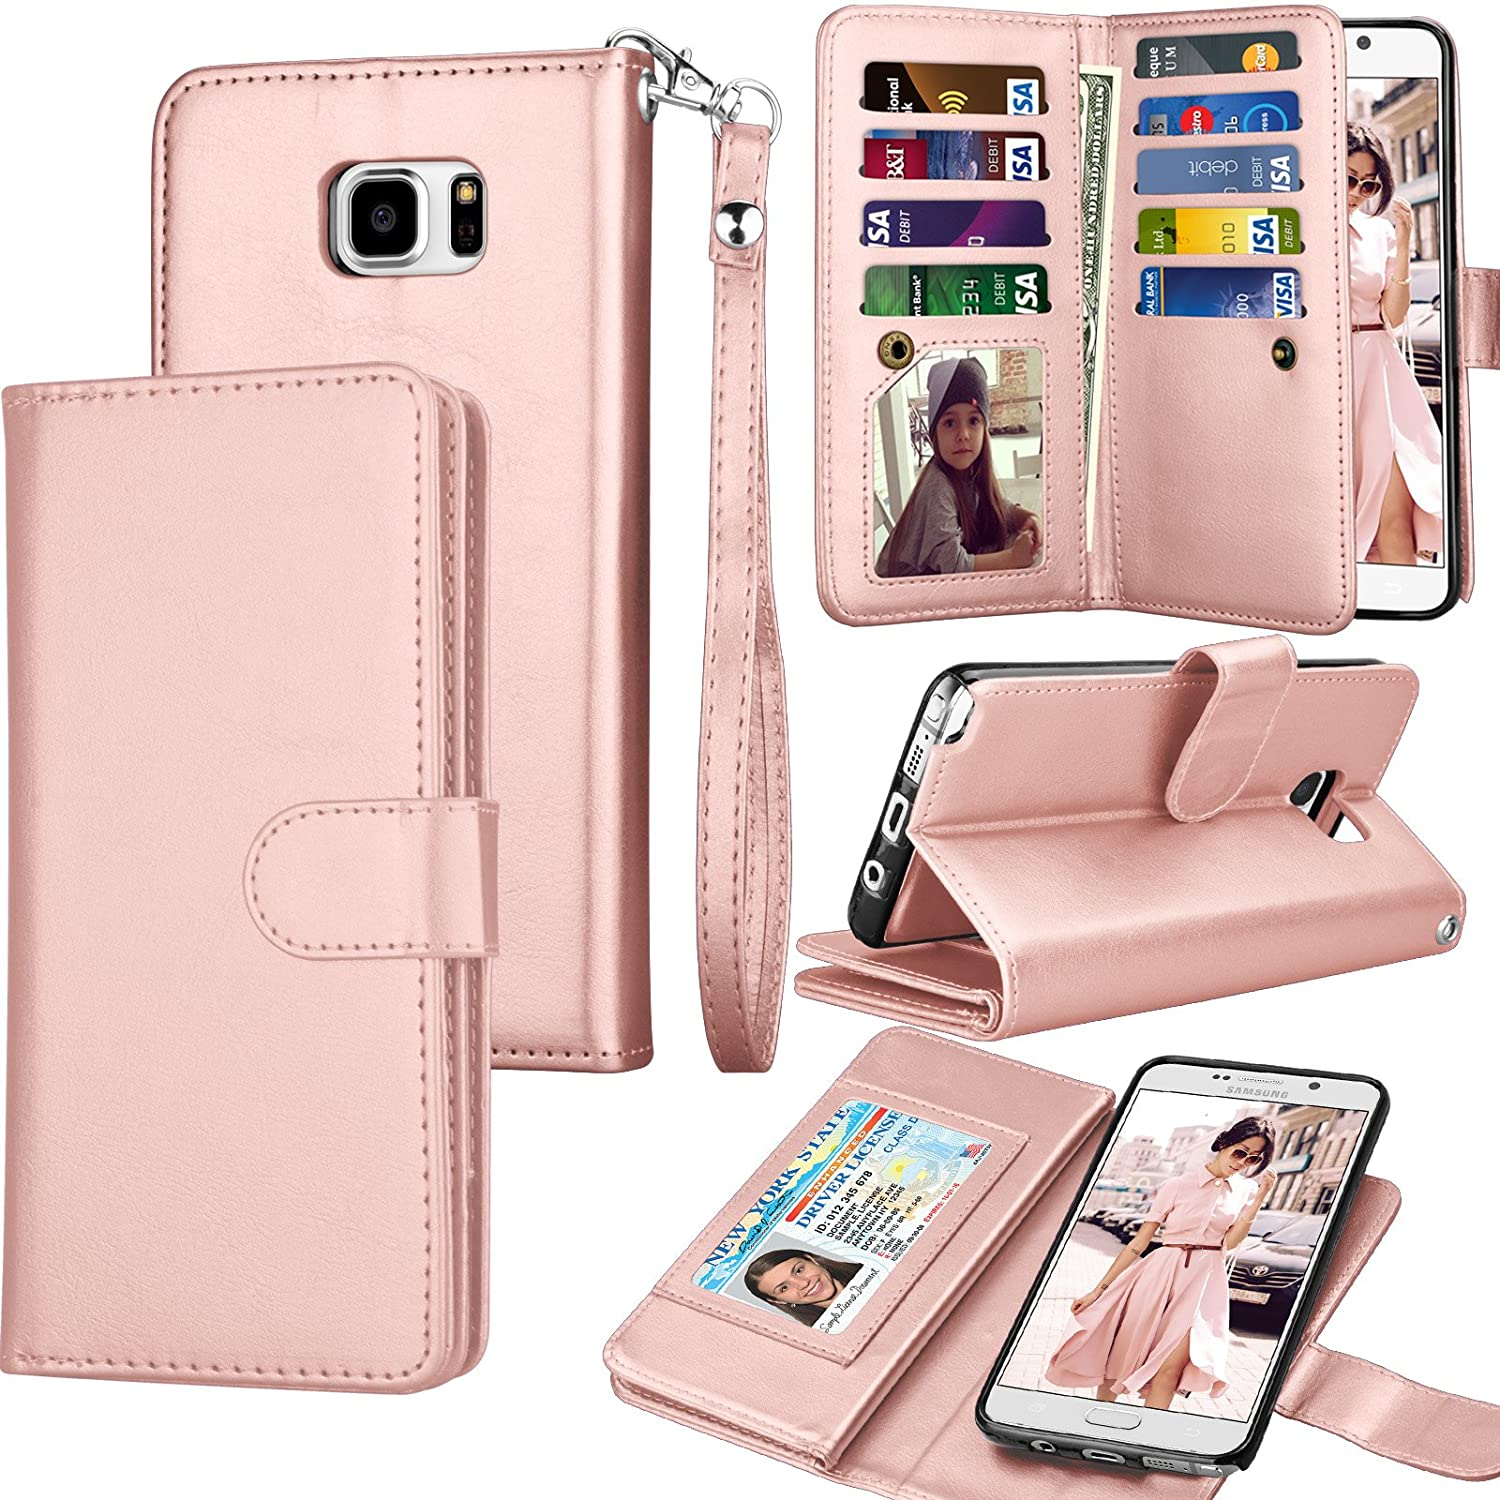 Tekcoo Compatible Galaxy Note 5 Wallet Case/Samsung Galaxy Note 5 PU Leather Case, Luxury Cash Credit Card Slots Holder Carrying Flip Cover [Detachable Magnetic Hard Case] & Kickstand -Rose Gold